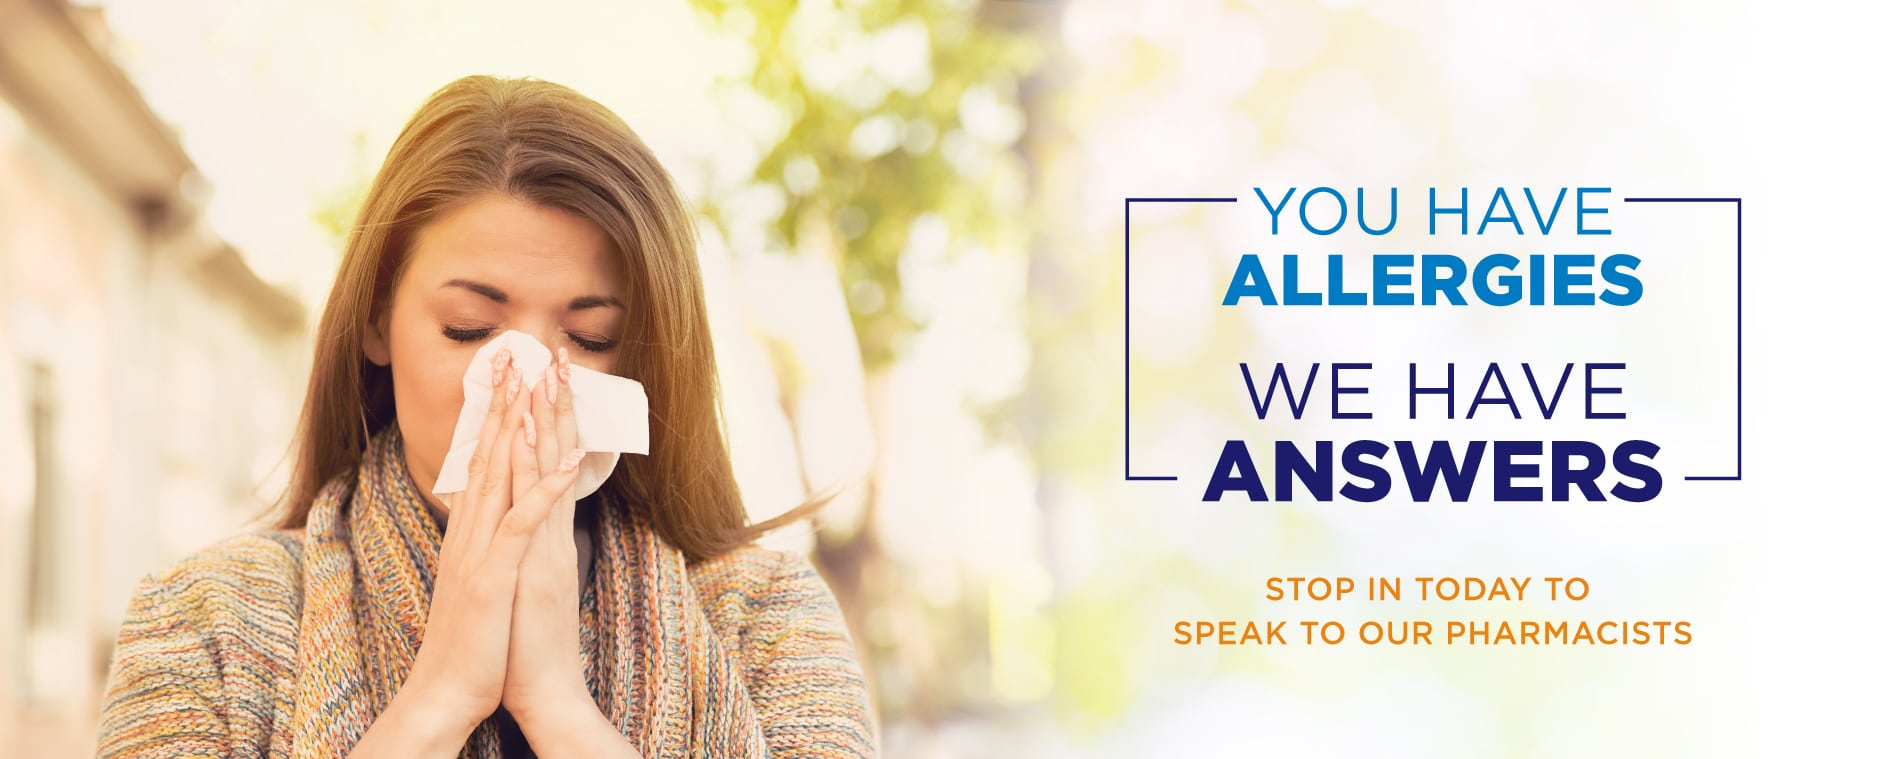 You have allergies, we have answers. Stop in today to speak to our pharmacists.